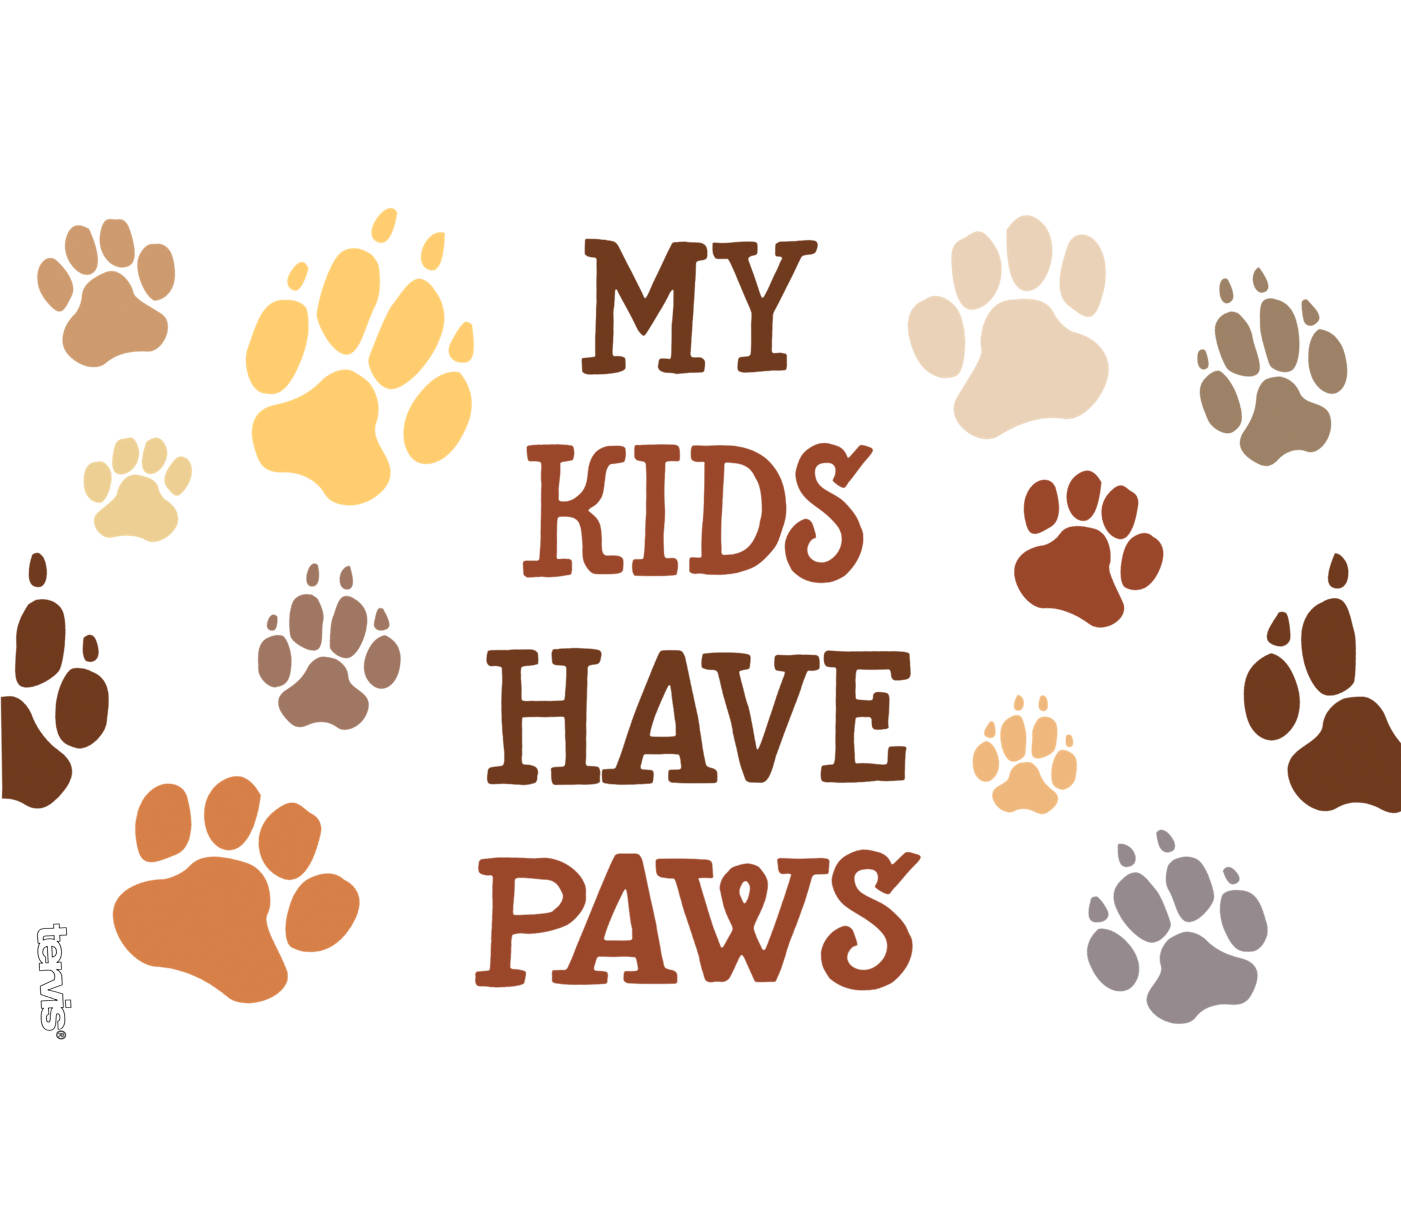 My best friend has 4 paws mug clipart clipart My Kids Have Paws Wrap With Travel Lid clipart